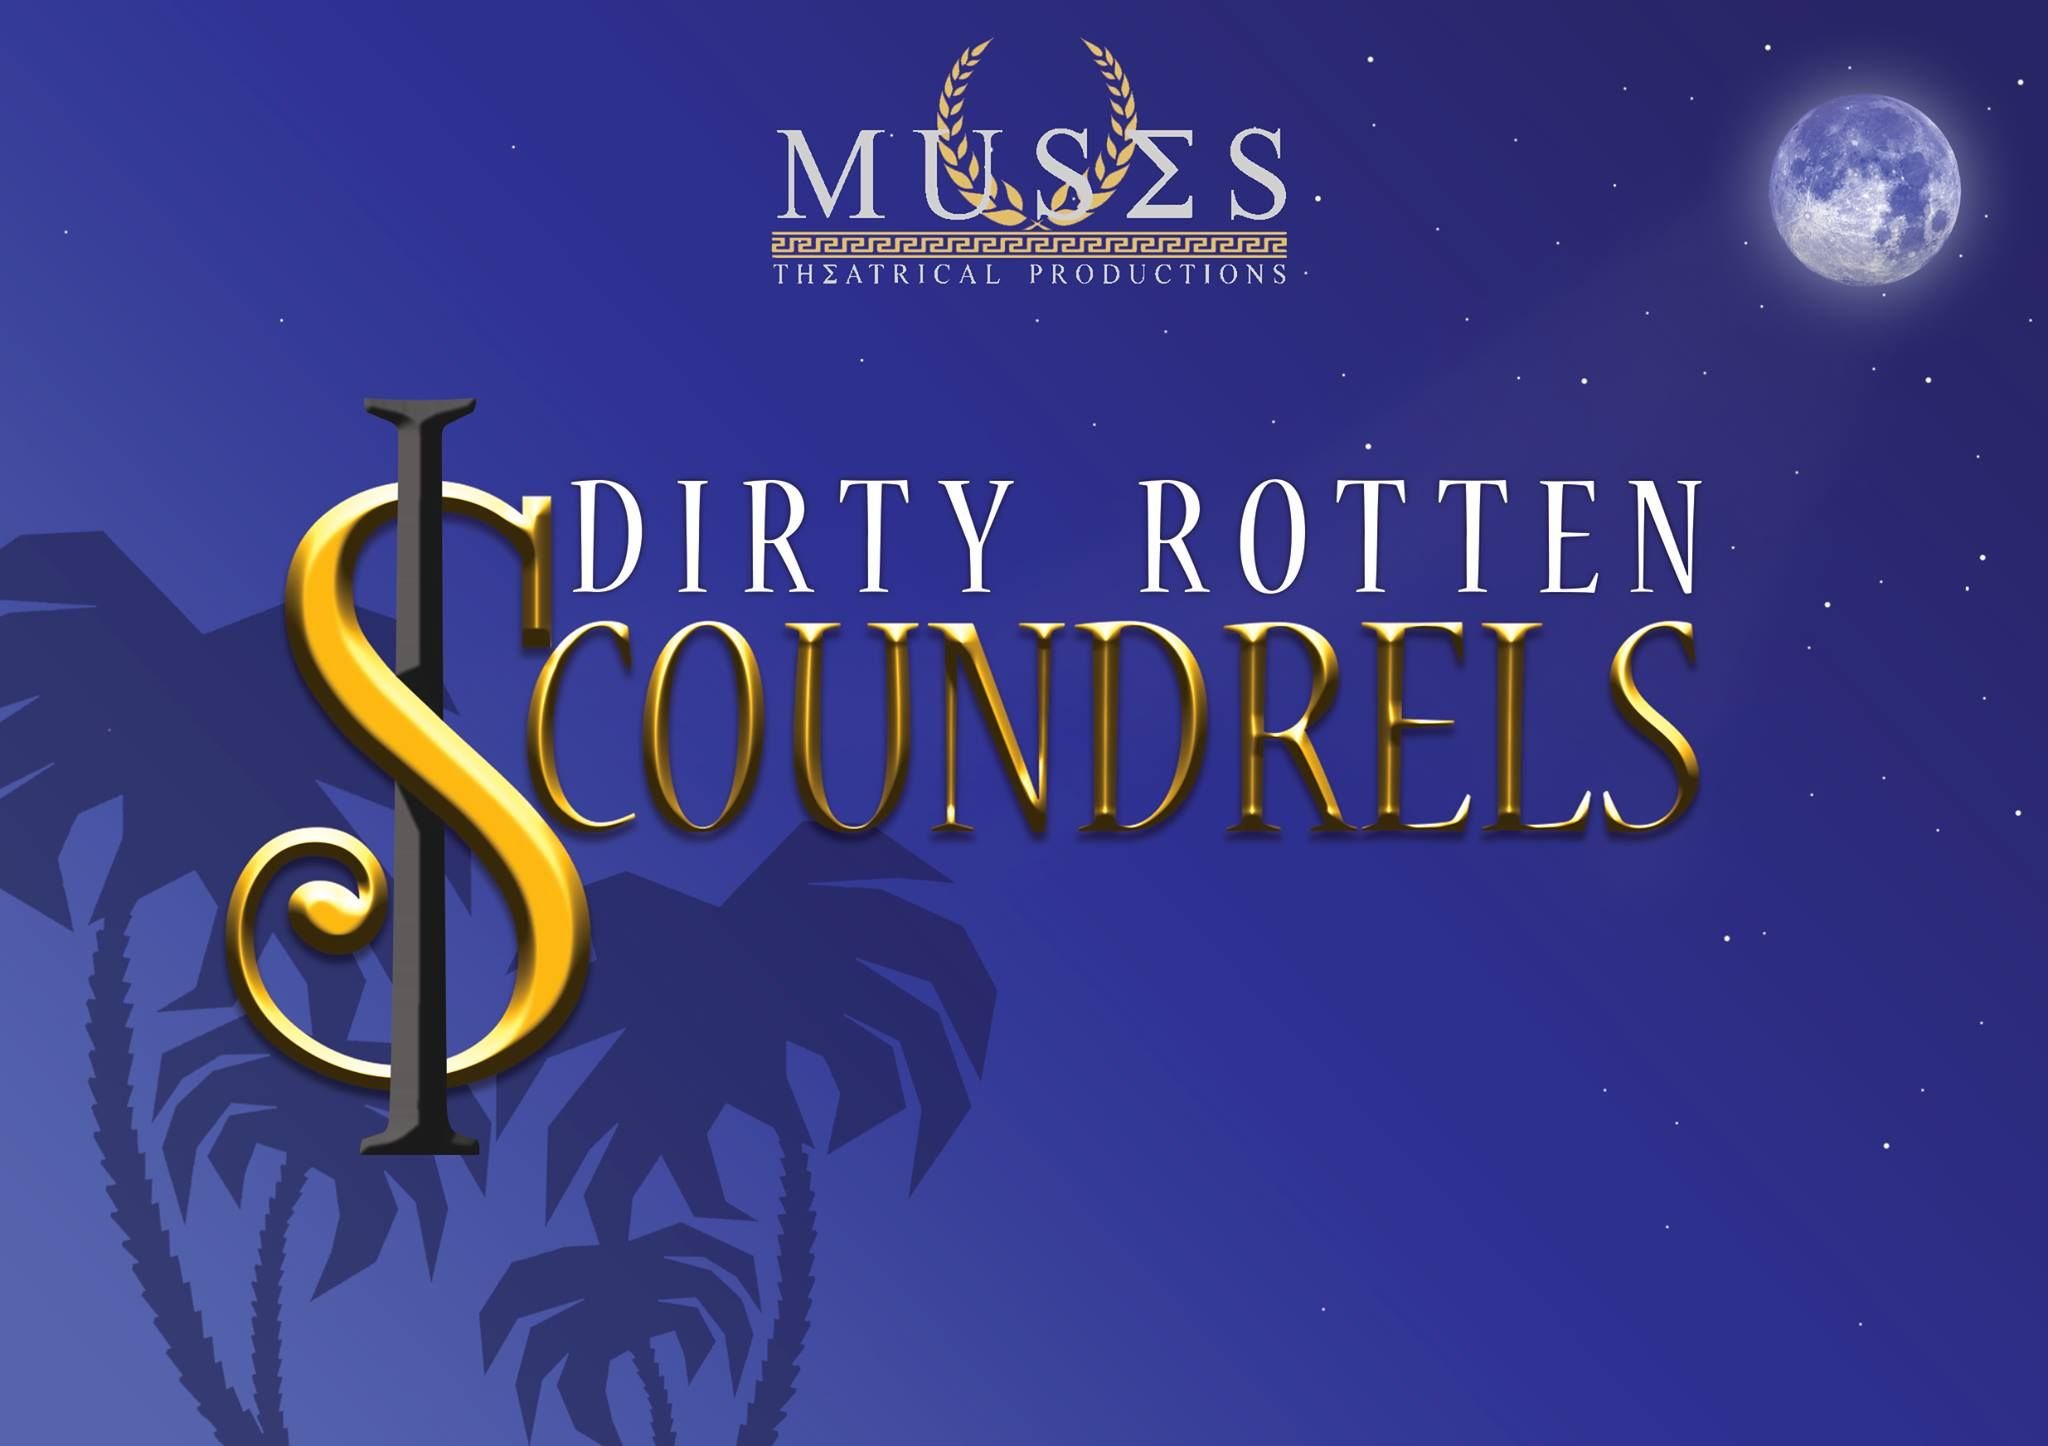 Dirty Rotten Scoundrels at the McMillan